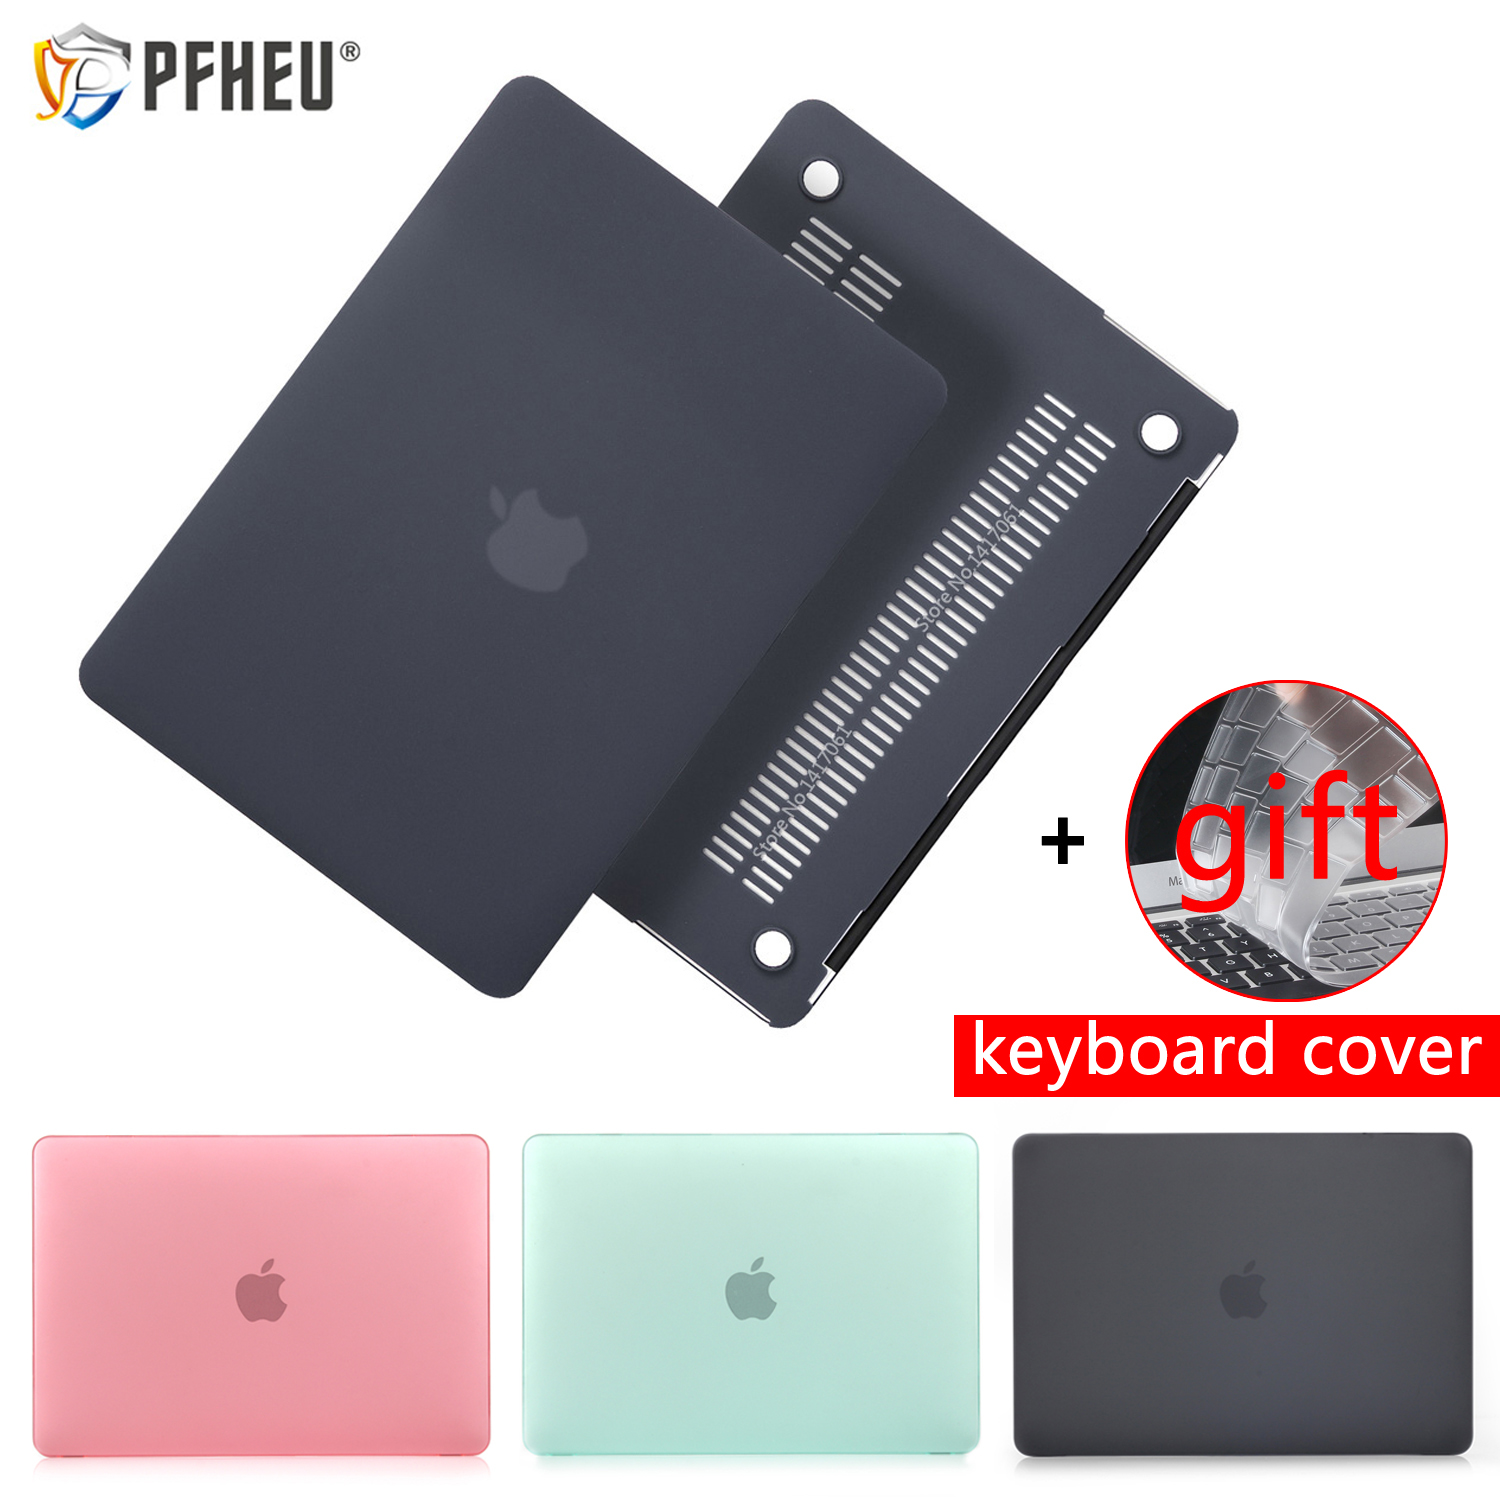 New Laptop Case For Apple MacBook Air Pro Retina 11 12 13 15 for mac book 13.3 inch with Touch Bar Sleeve Shell + Keyboard Cover